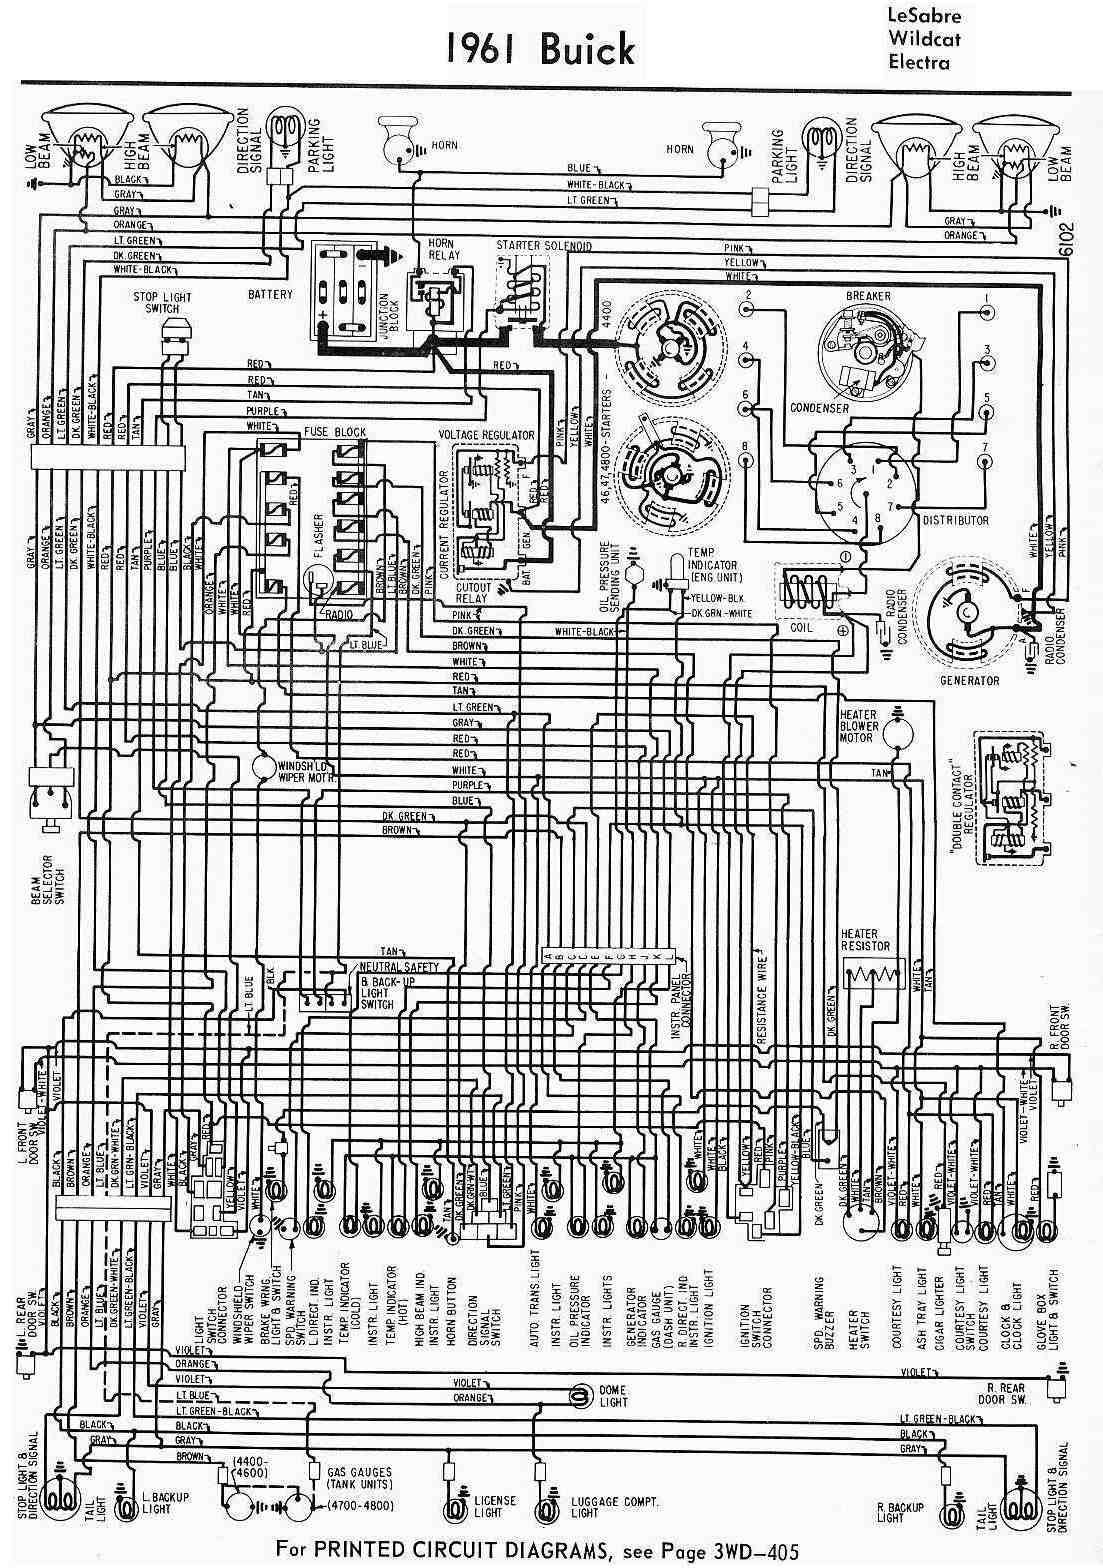 a6441862bfcf99130fb7ff5756998744 1948 studebaker wiring diagram manual repair with engine Chevy Truck Wiring Diagram at bayanpartner.co